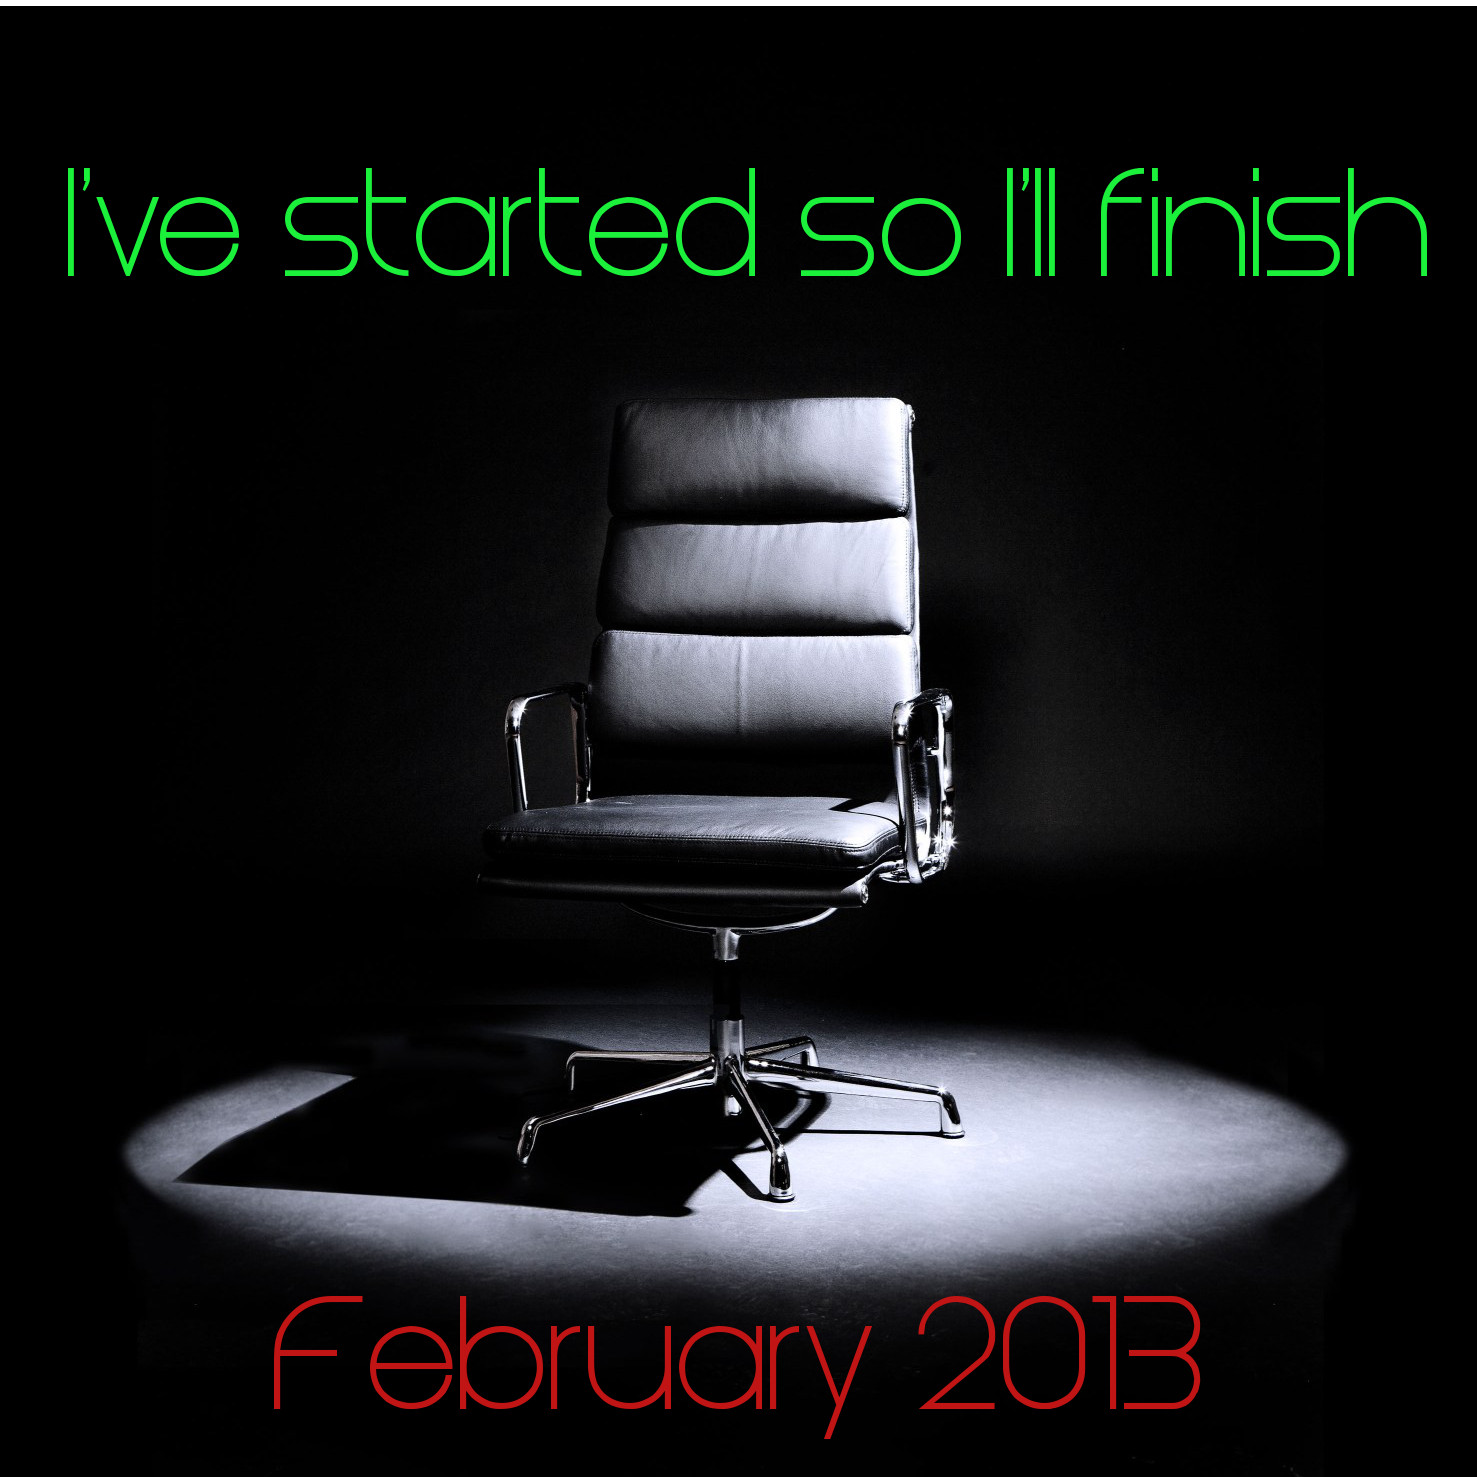 download ratio free → Paul Ross - I've started, so I'll finish - February 2014